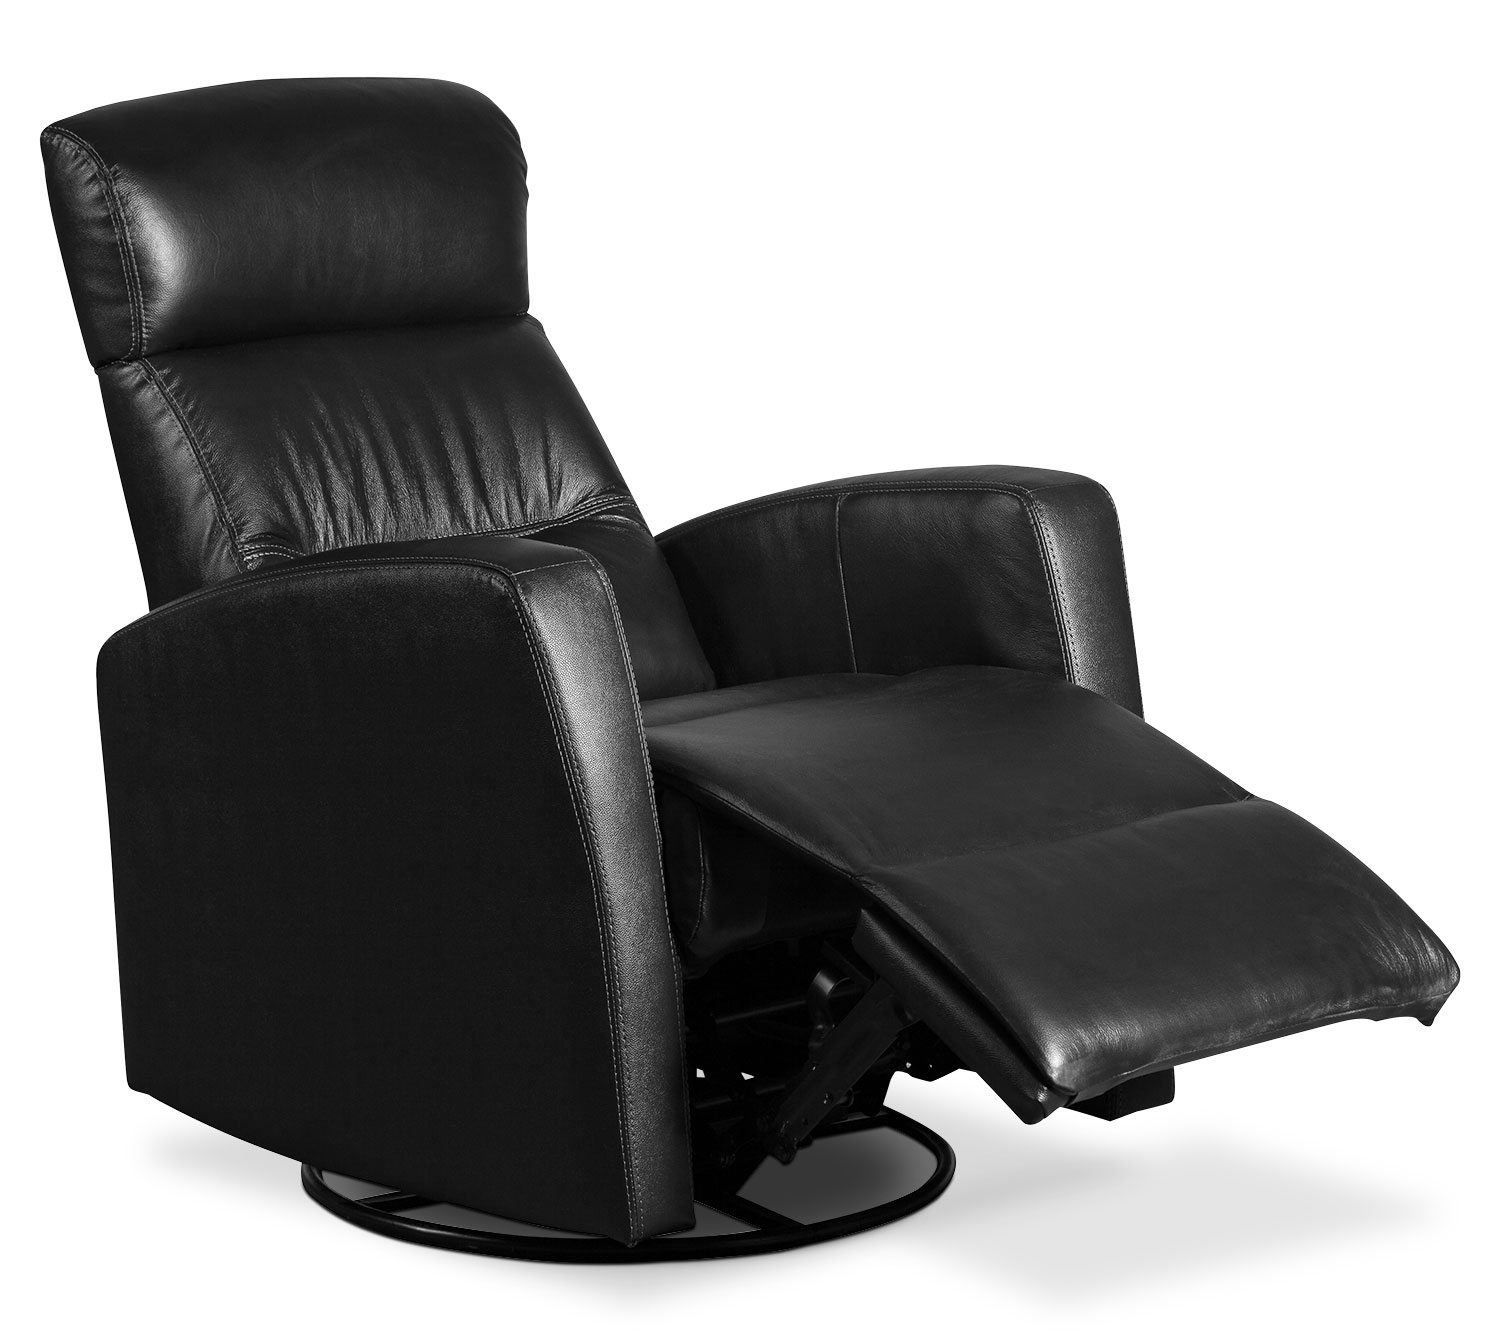 Penny genuine leather swivel rocker reclining chair black the brick for Swivel chairs living room sale